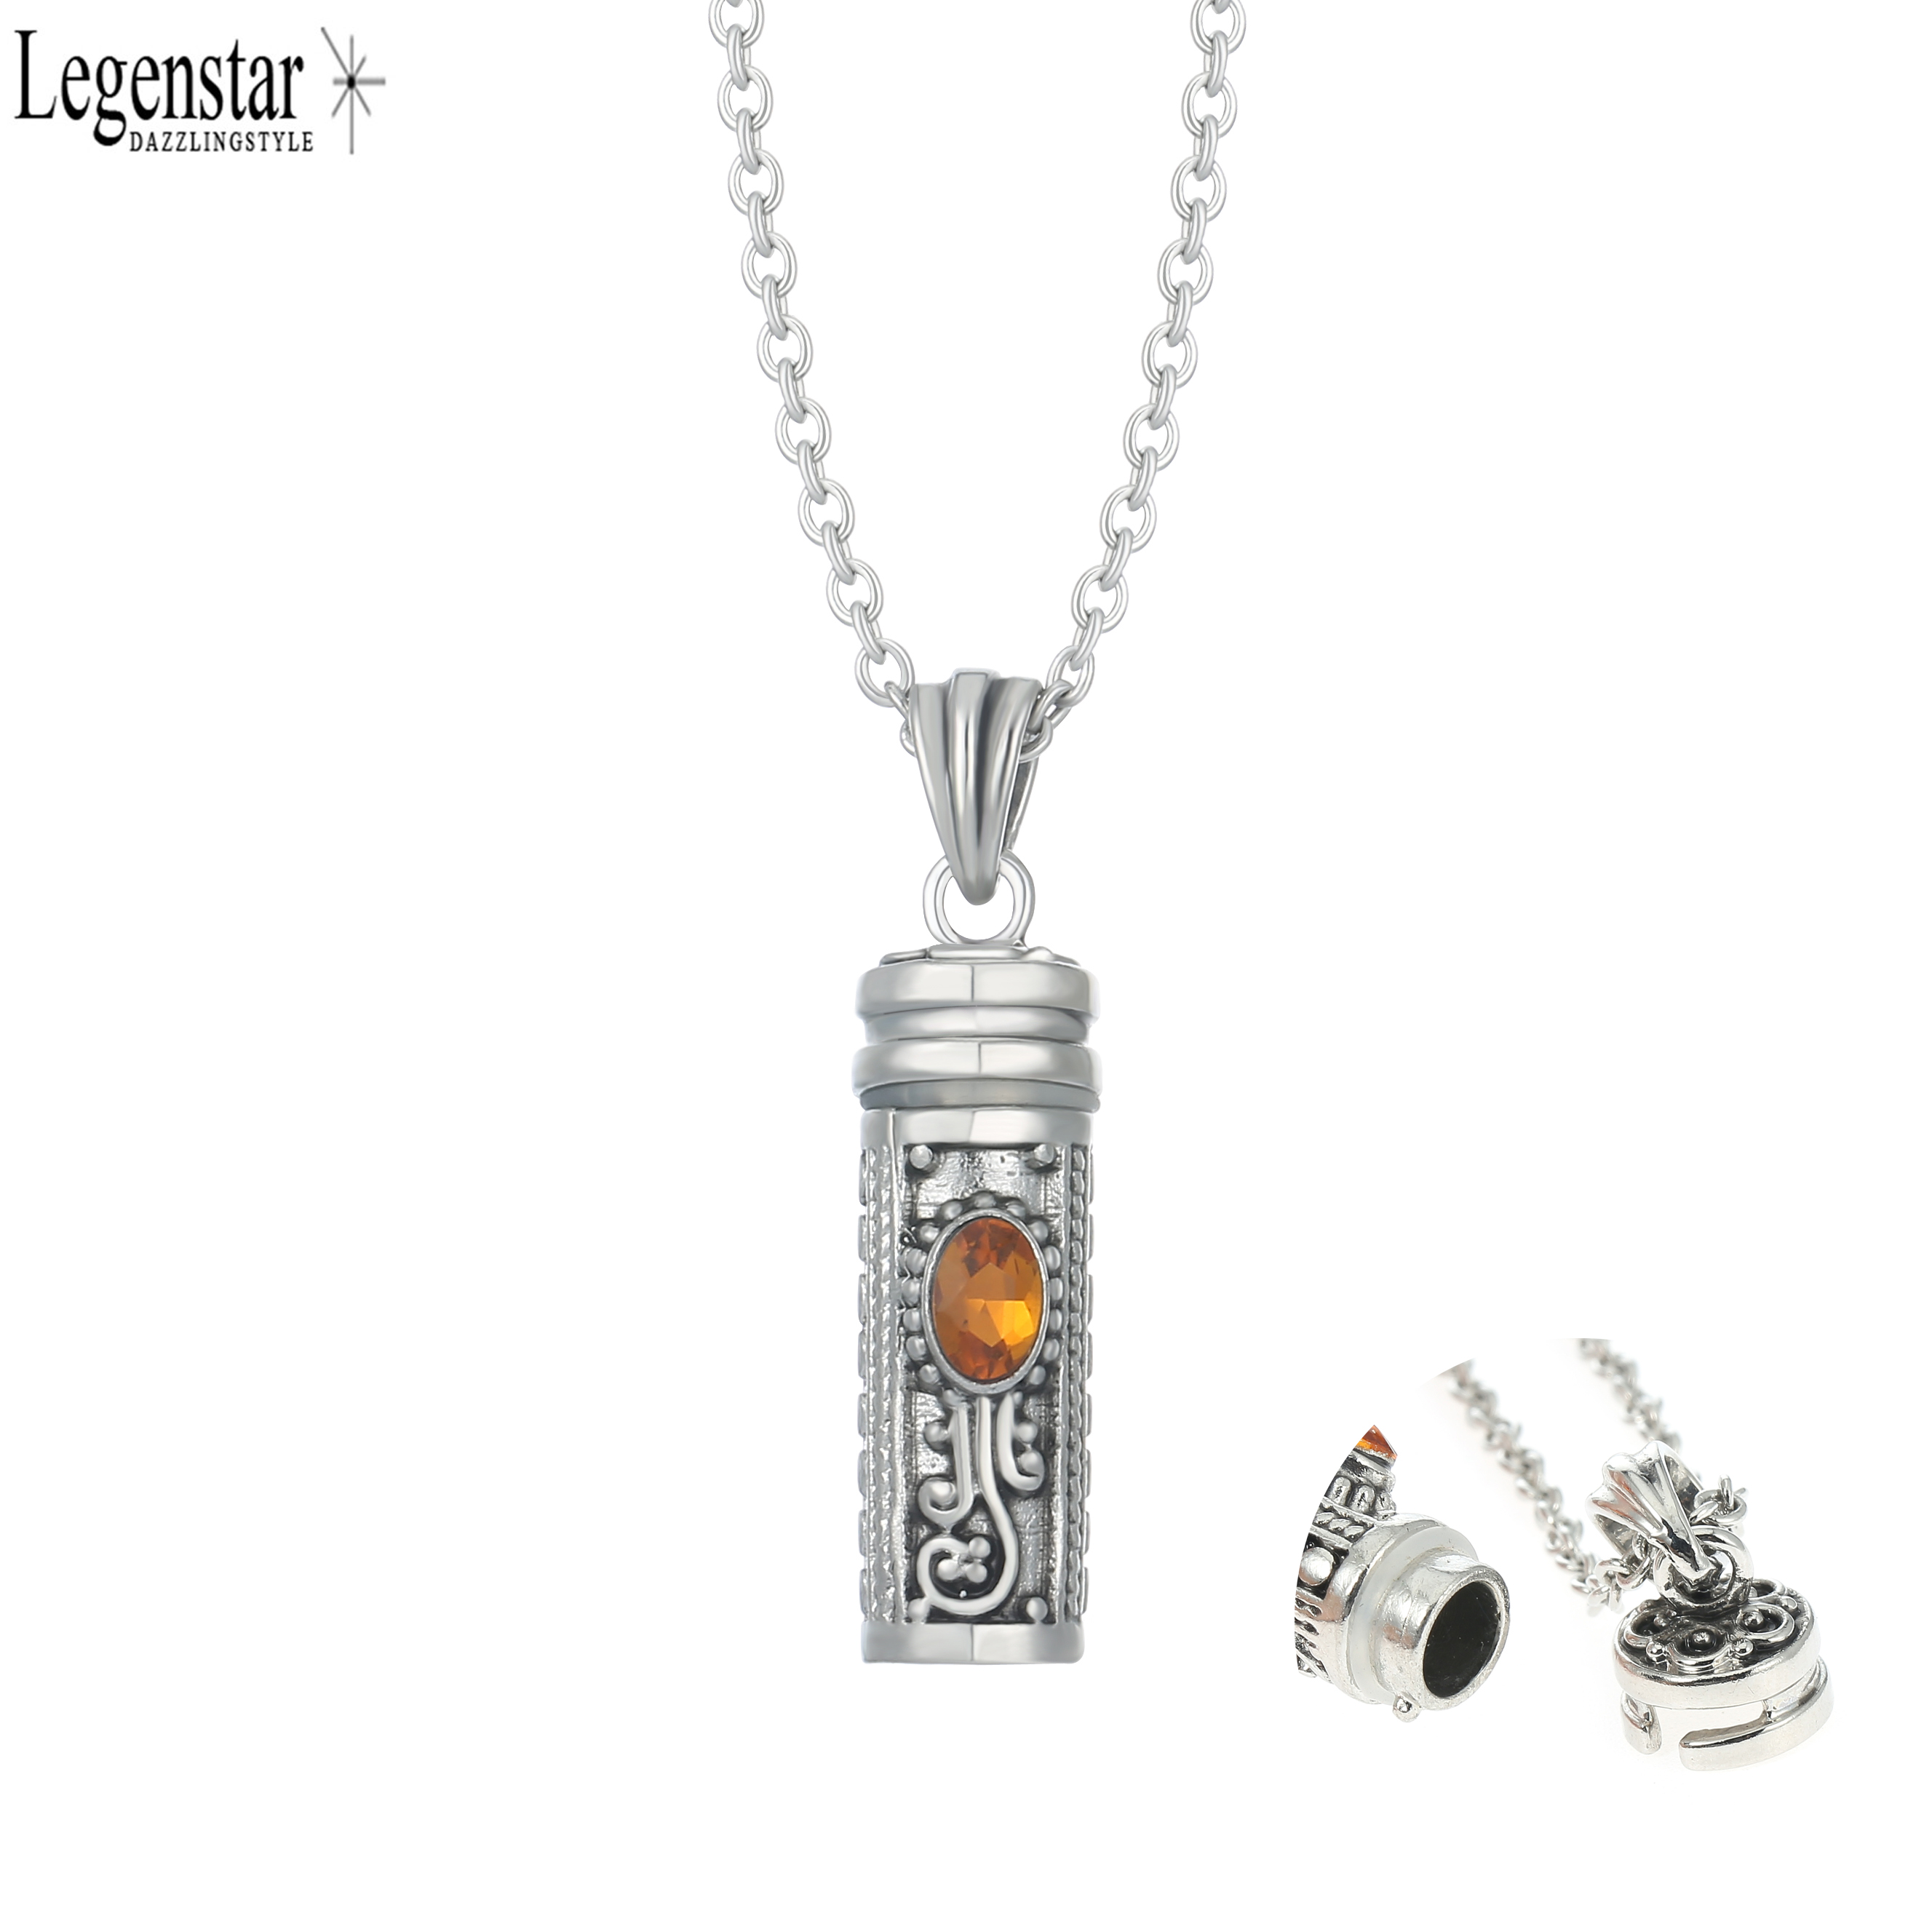 pinterest jewelry ashes memories process lockets in keep close silver remarkable locket memorial into unique sterling our jewel glass a lifeware pin cremation set transforms with